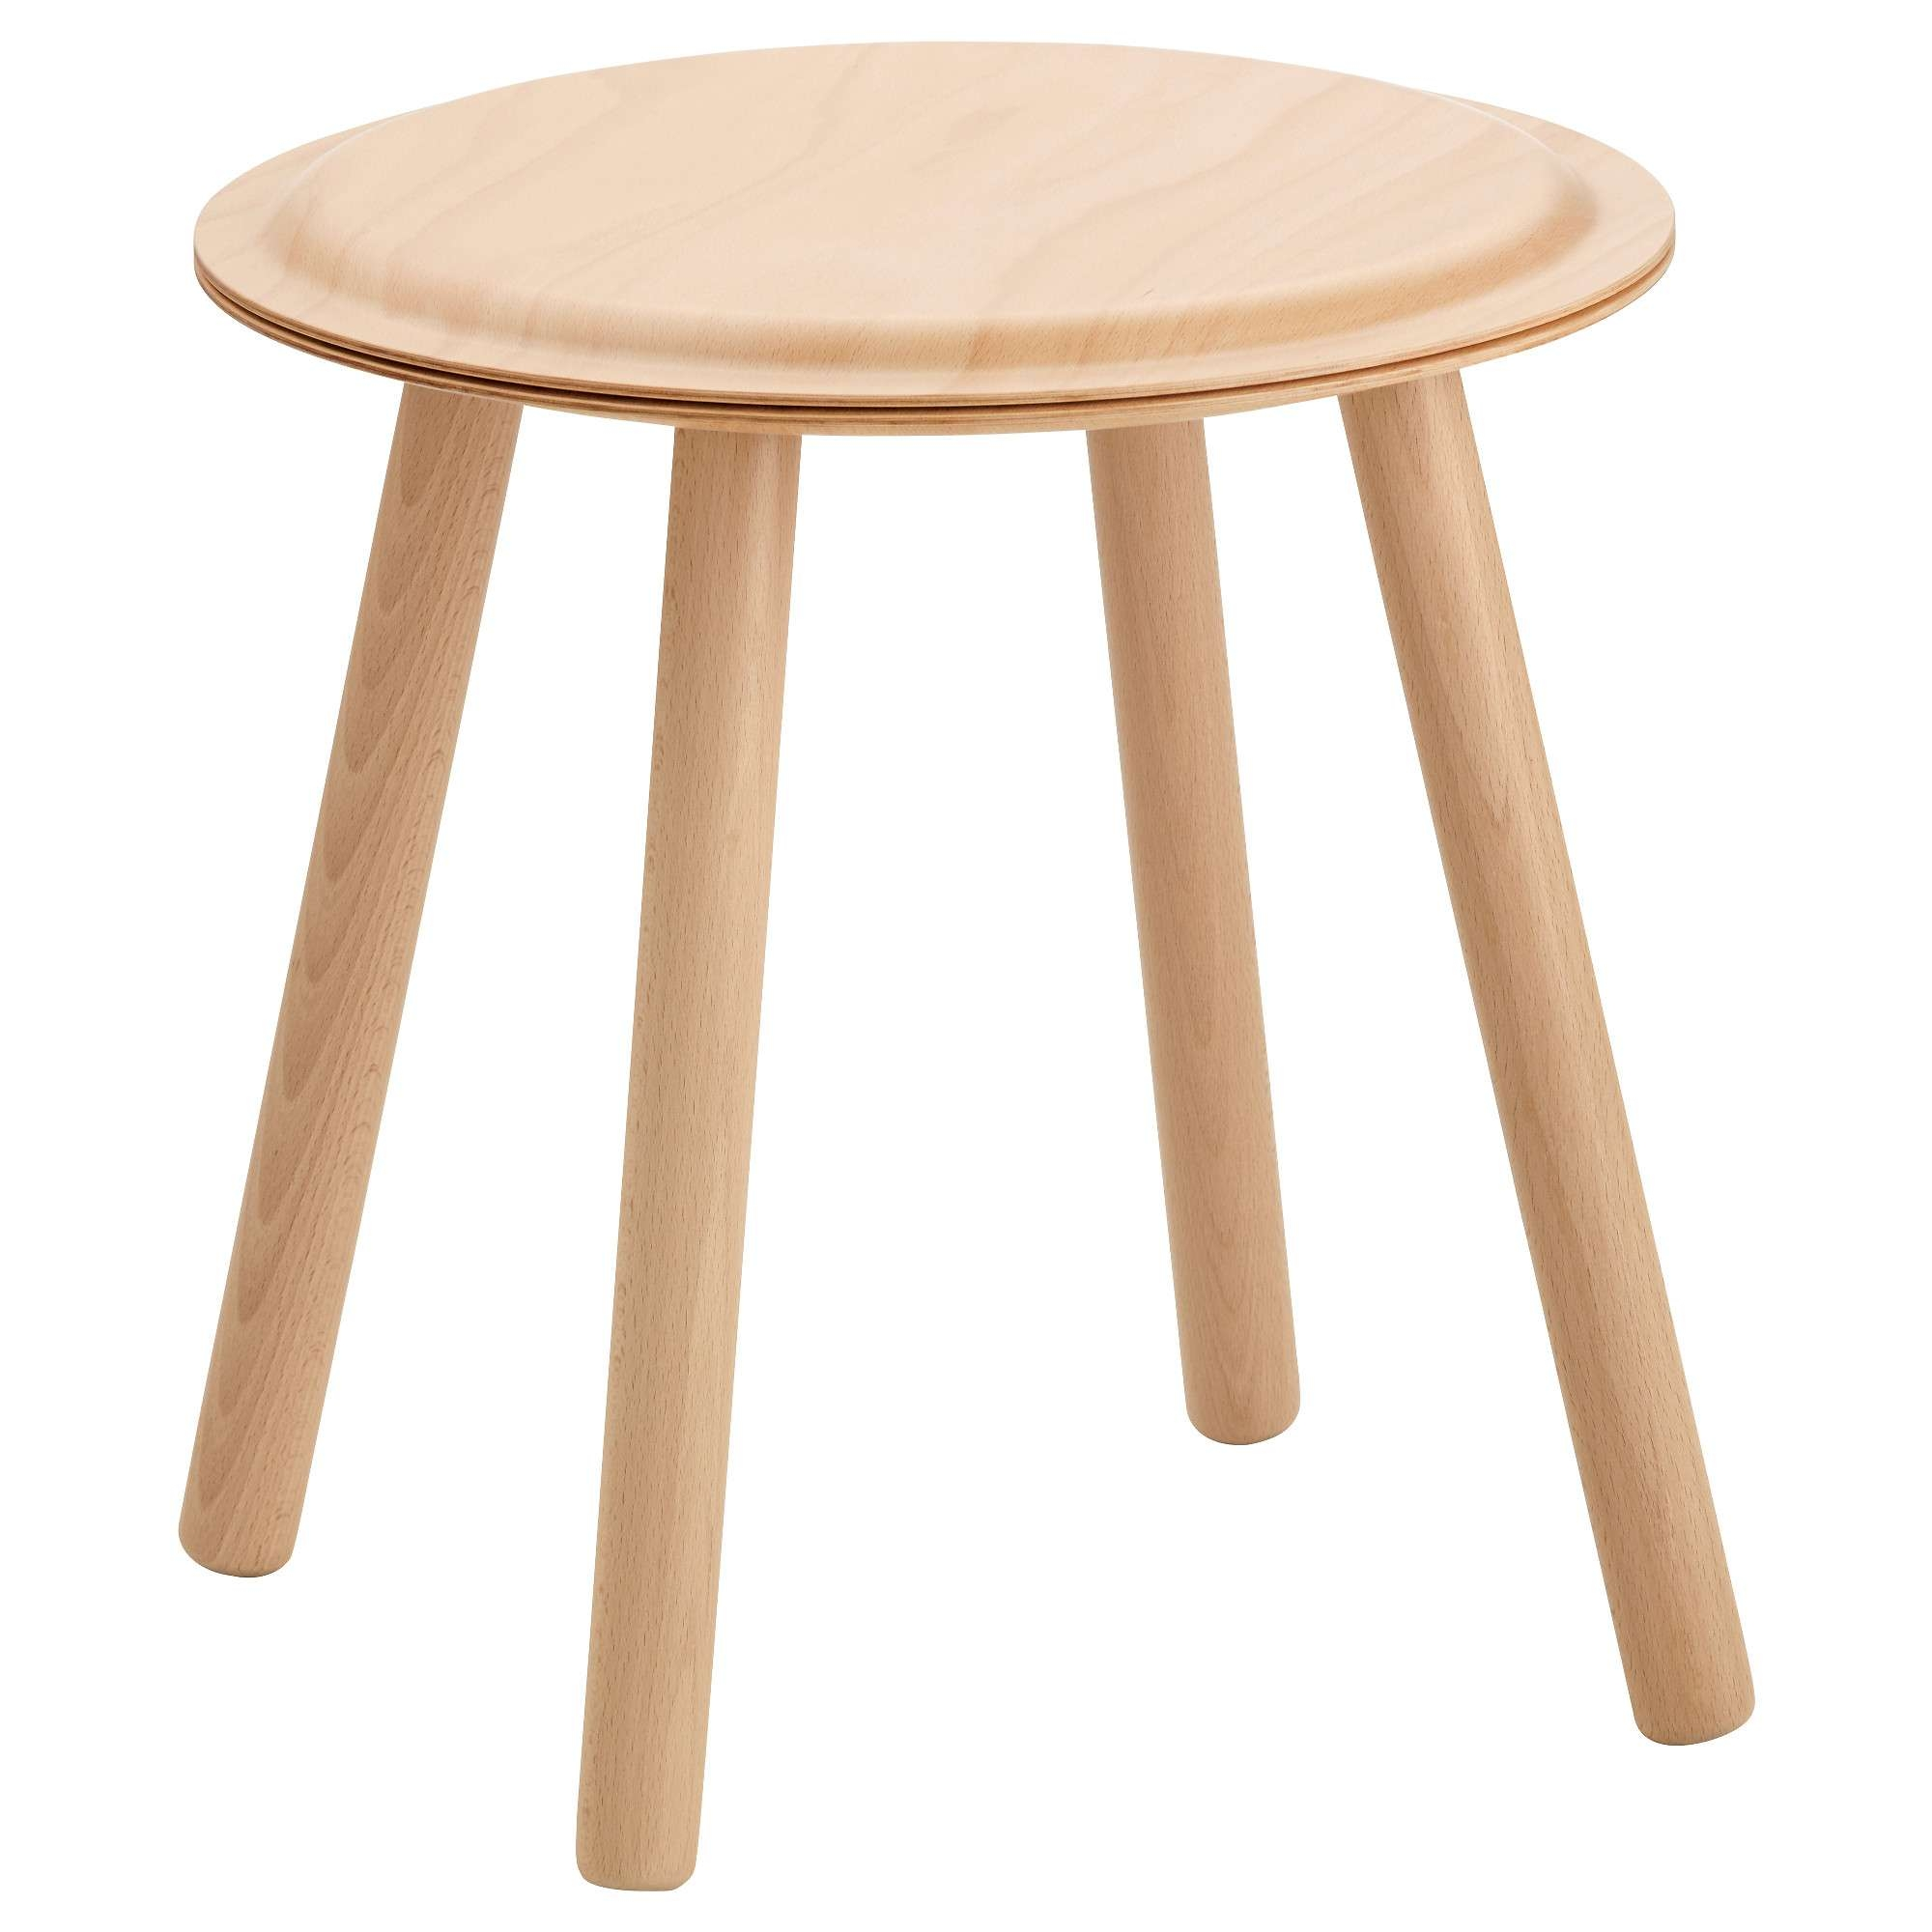 Most Popular Beech Coffee Tables Throughout Ikea Ps 2017 Side Table/stool Beech – Ikea (View 11 of 20)